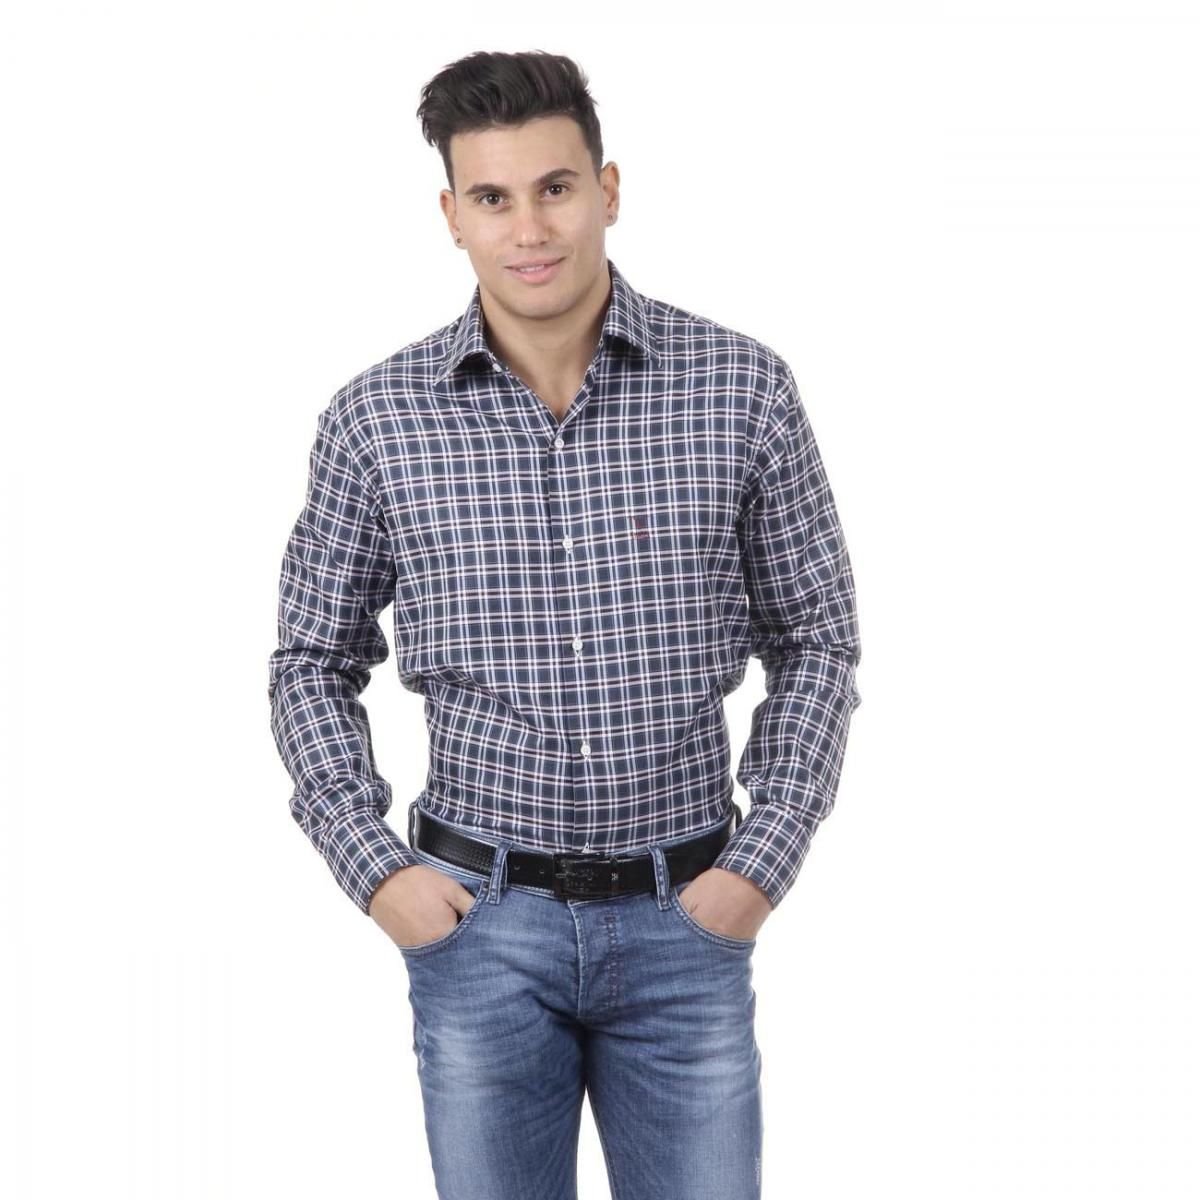 V 1969 Italia Mens Fit Modern Classic Shirt 377 ART. 229. By Versace 19.69 Abbigliamento Sportivo Srl Milano Italia - Details: 377 ART. 229 - Color: Checked - Composition: 100% COTTON - Made: ITALY